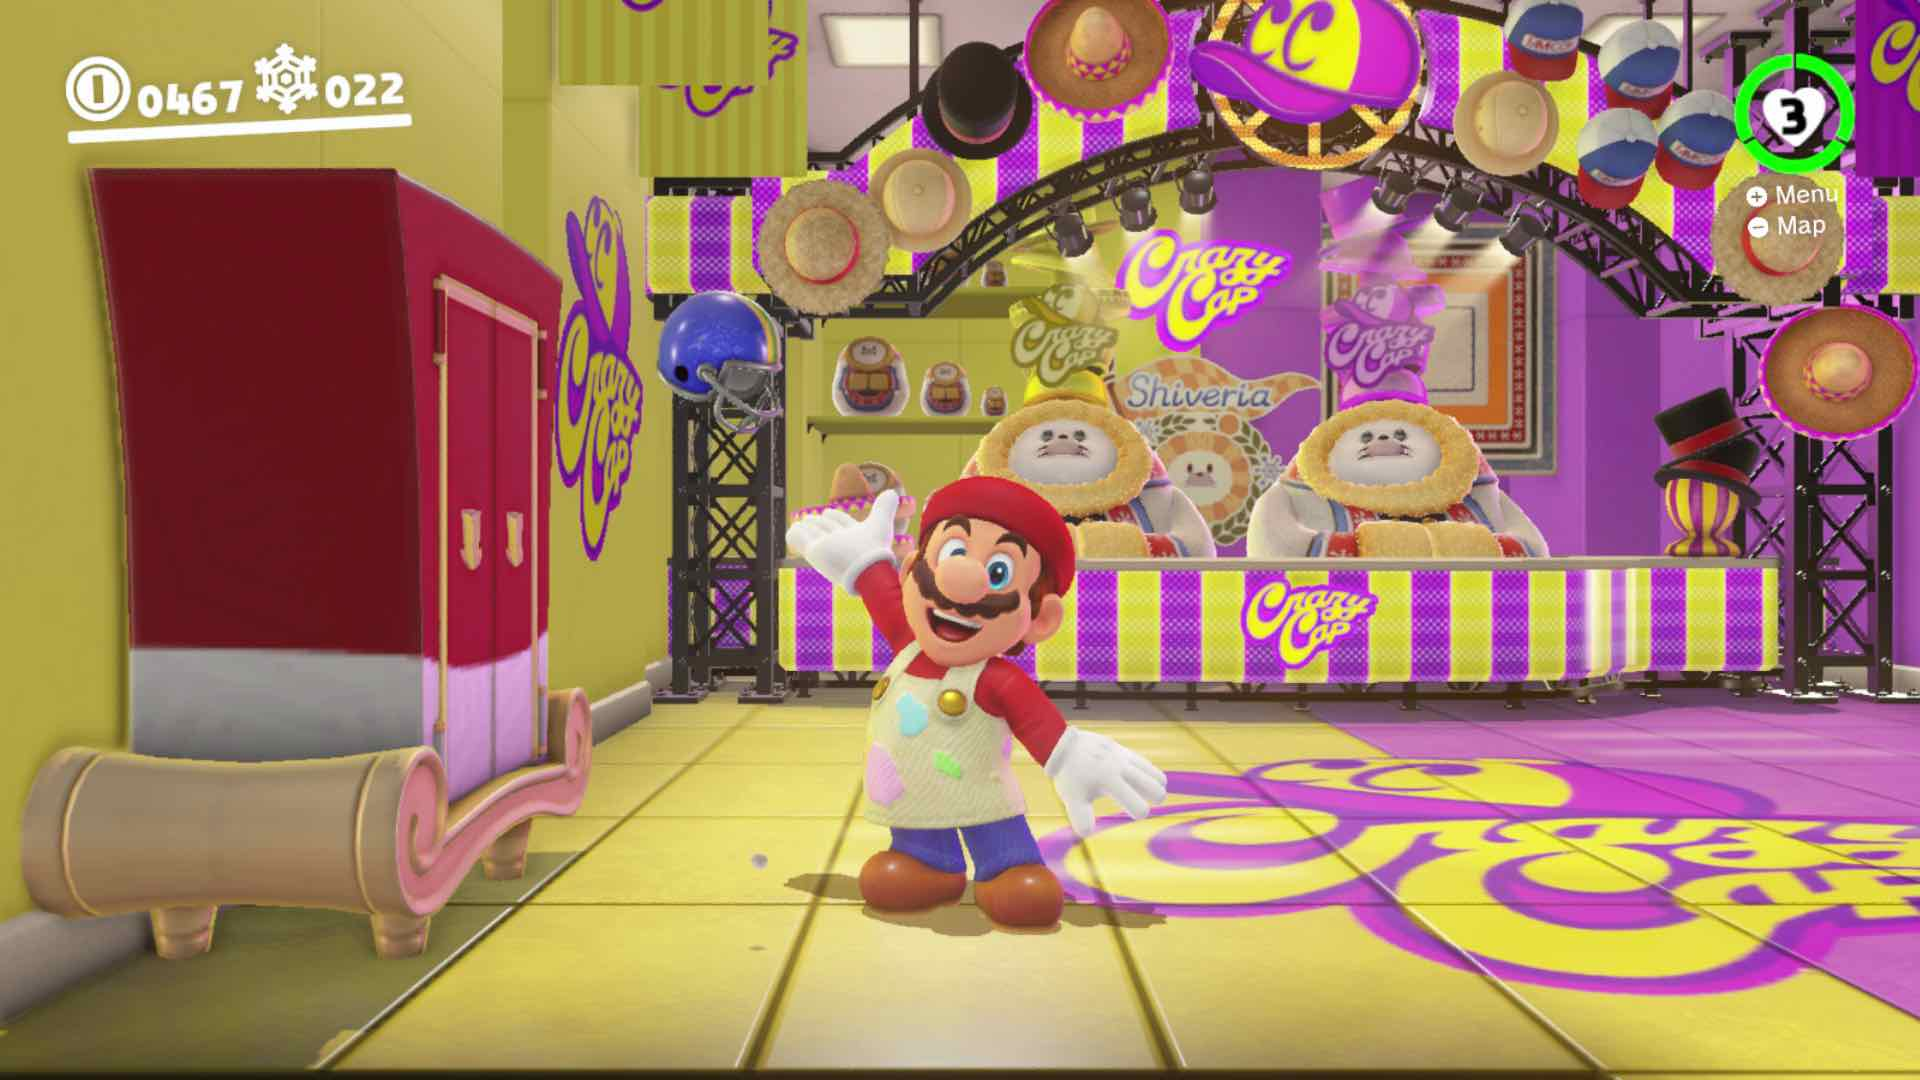 painter-outfit-super-mario-odyssey-screenshot